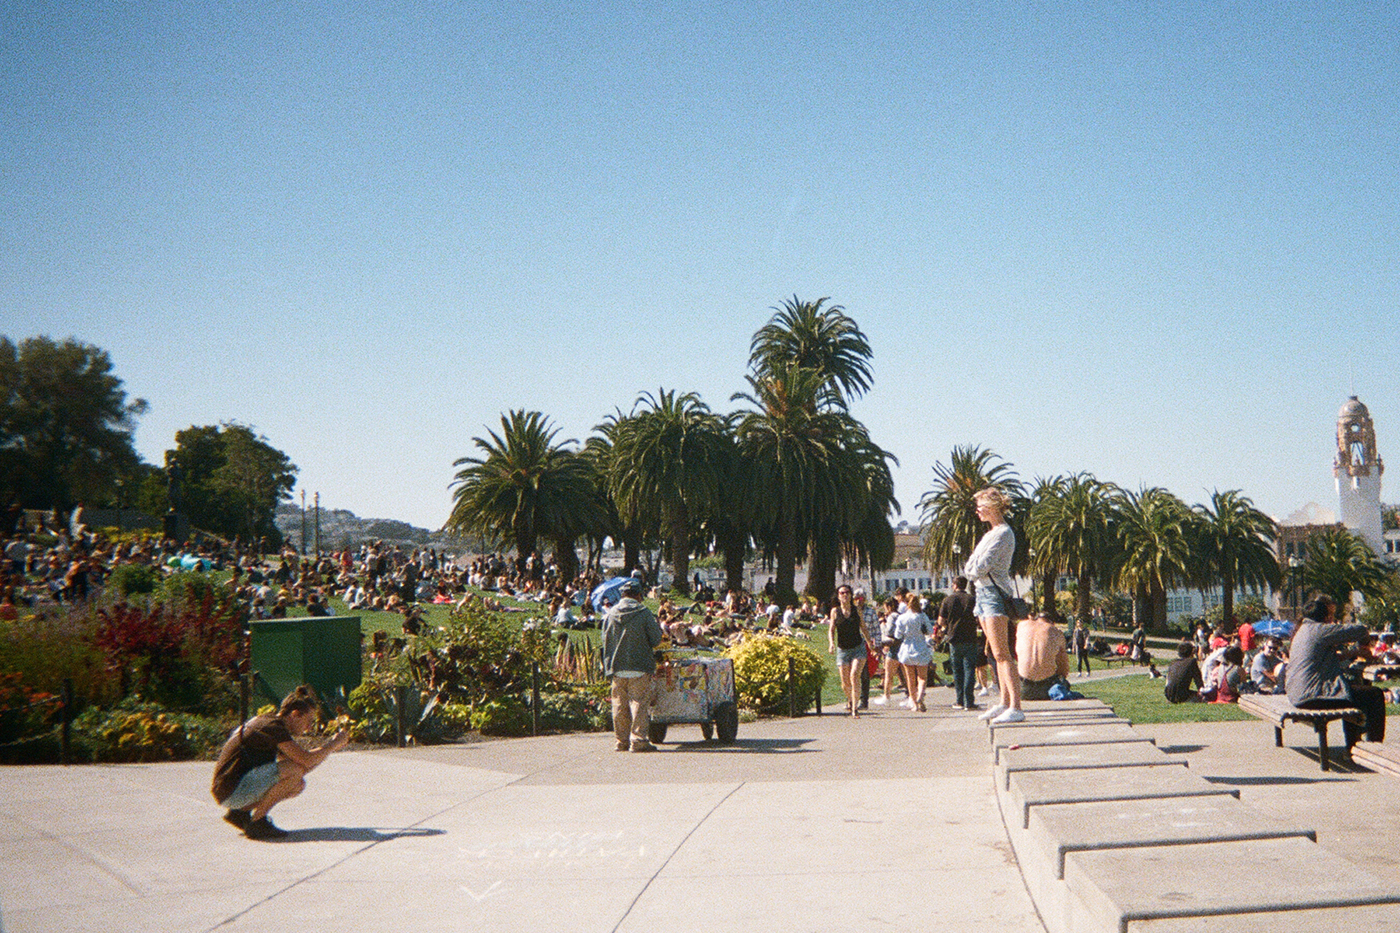 (Dolores Park) But who takes pics of the person who takes pics?